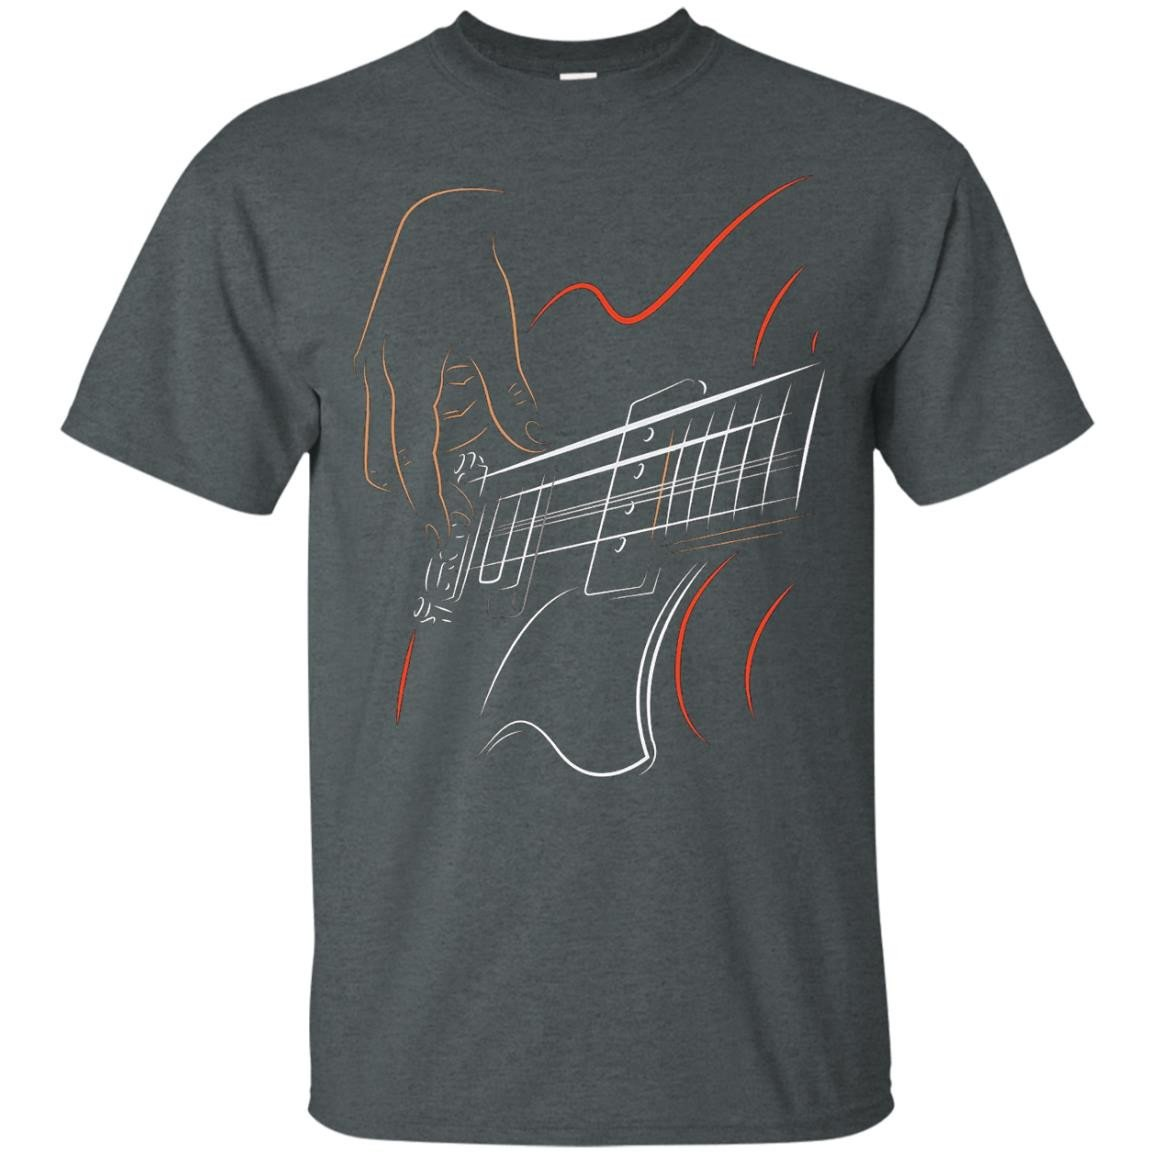 Active Bass Guitar Rock Music T-shirt Graphic Guitar Player - T-Shirt